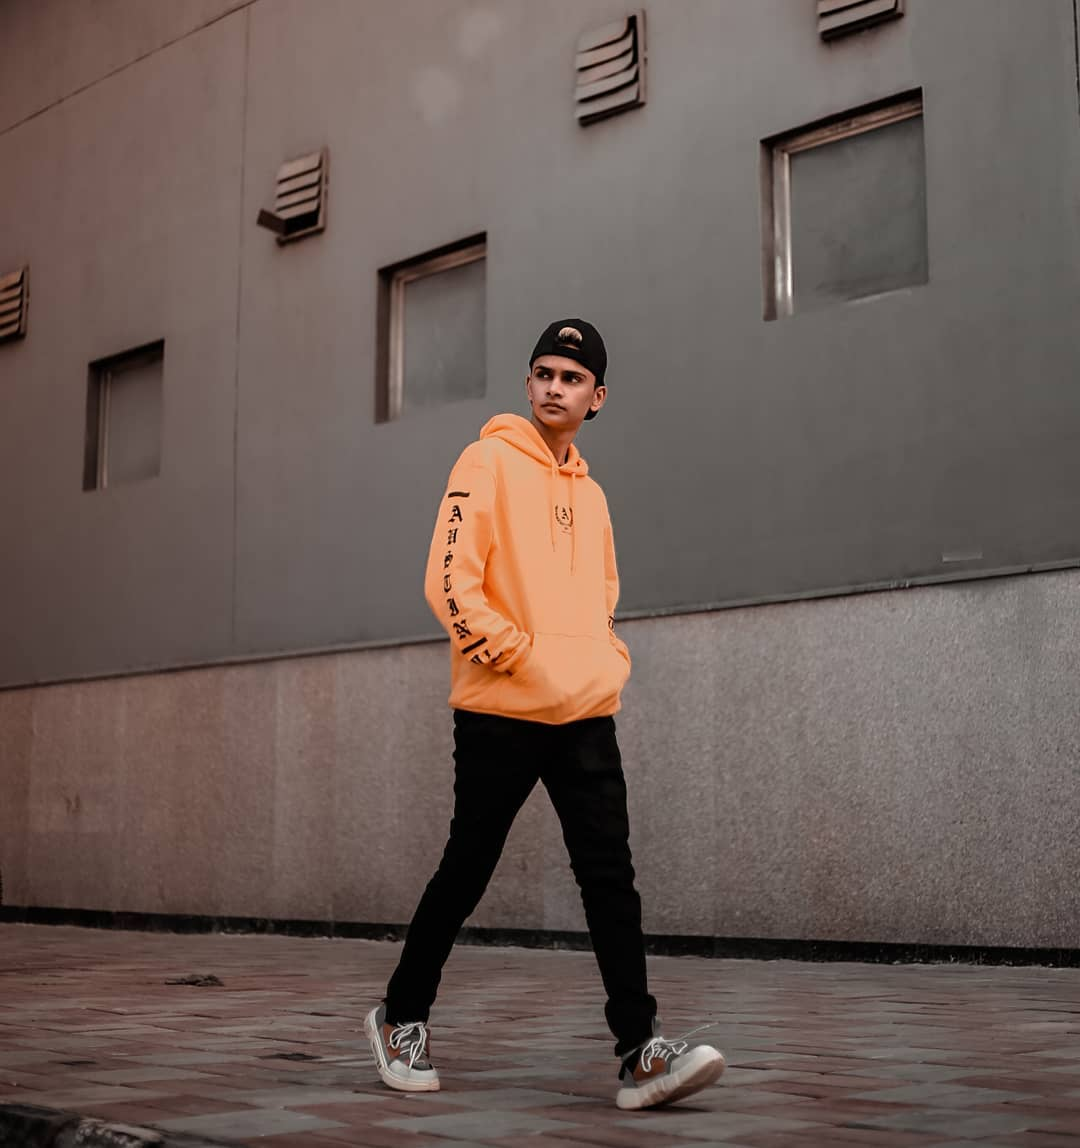 Lucky Dancer (TikTok Star) Wiki, Age, Bio, Girlfriends, Income & More